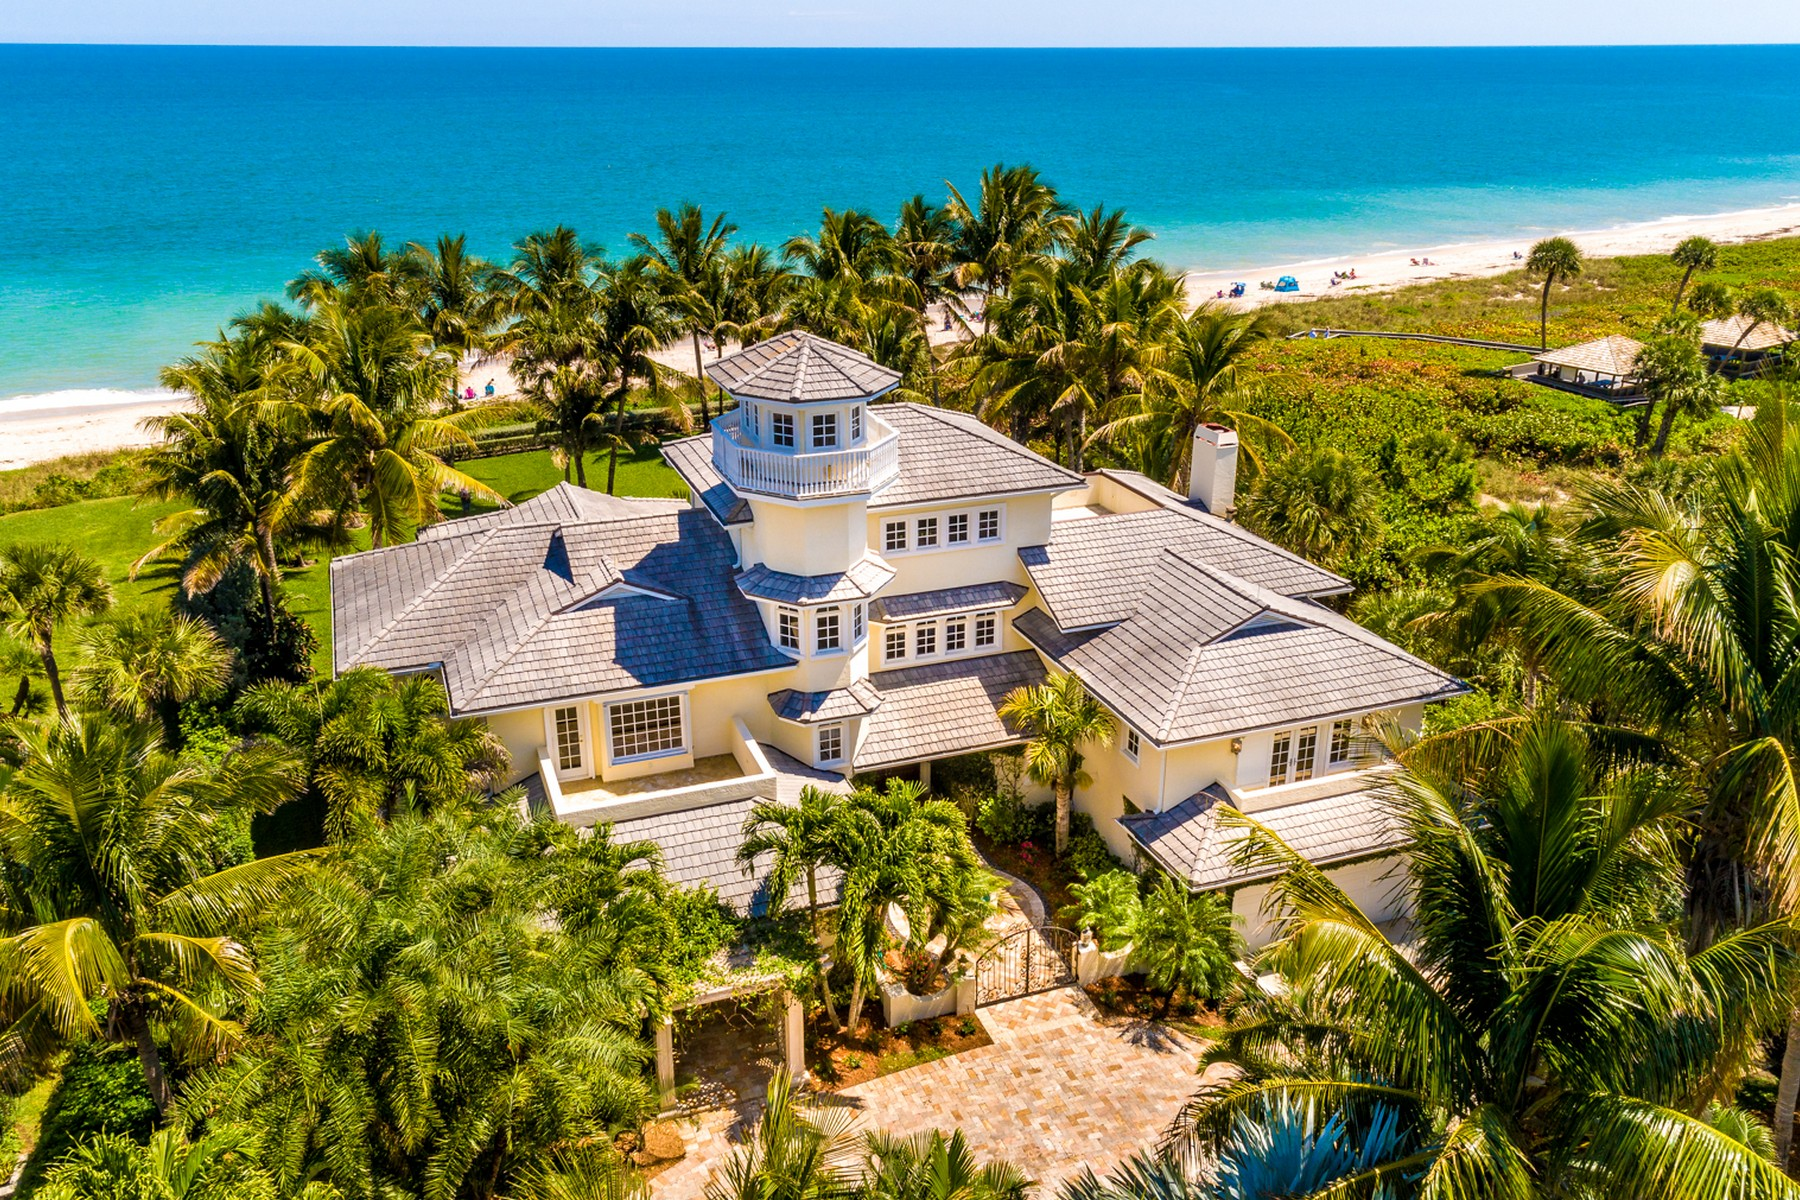 Property for Sale at Magnificent Oceanfront Estate 960 Reef Road Vero Beach, Florida 32963 United States